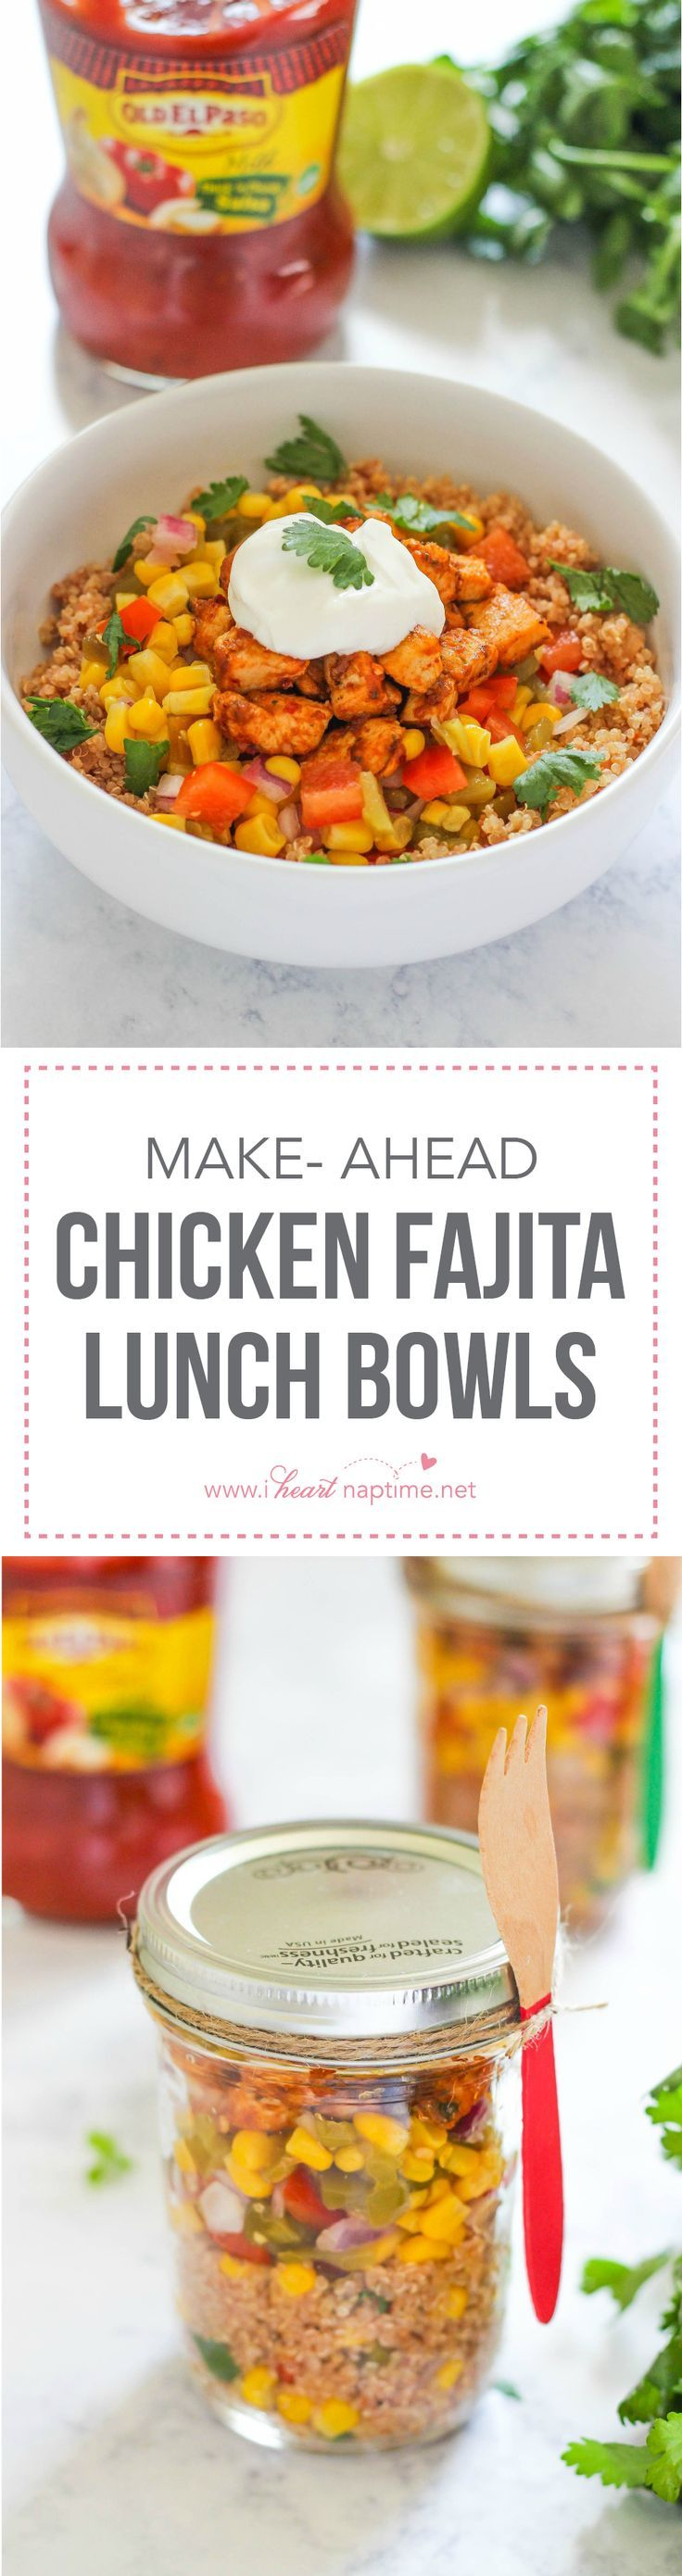 35 best Work lunch ideas images on Pinterest | Healthy meals ...